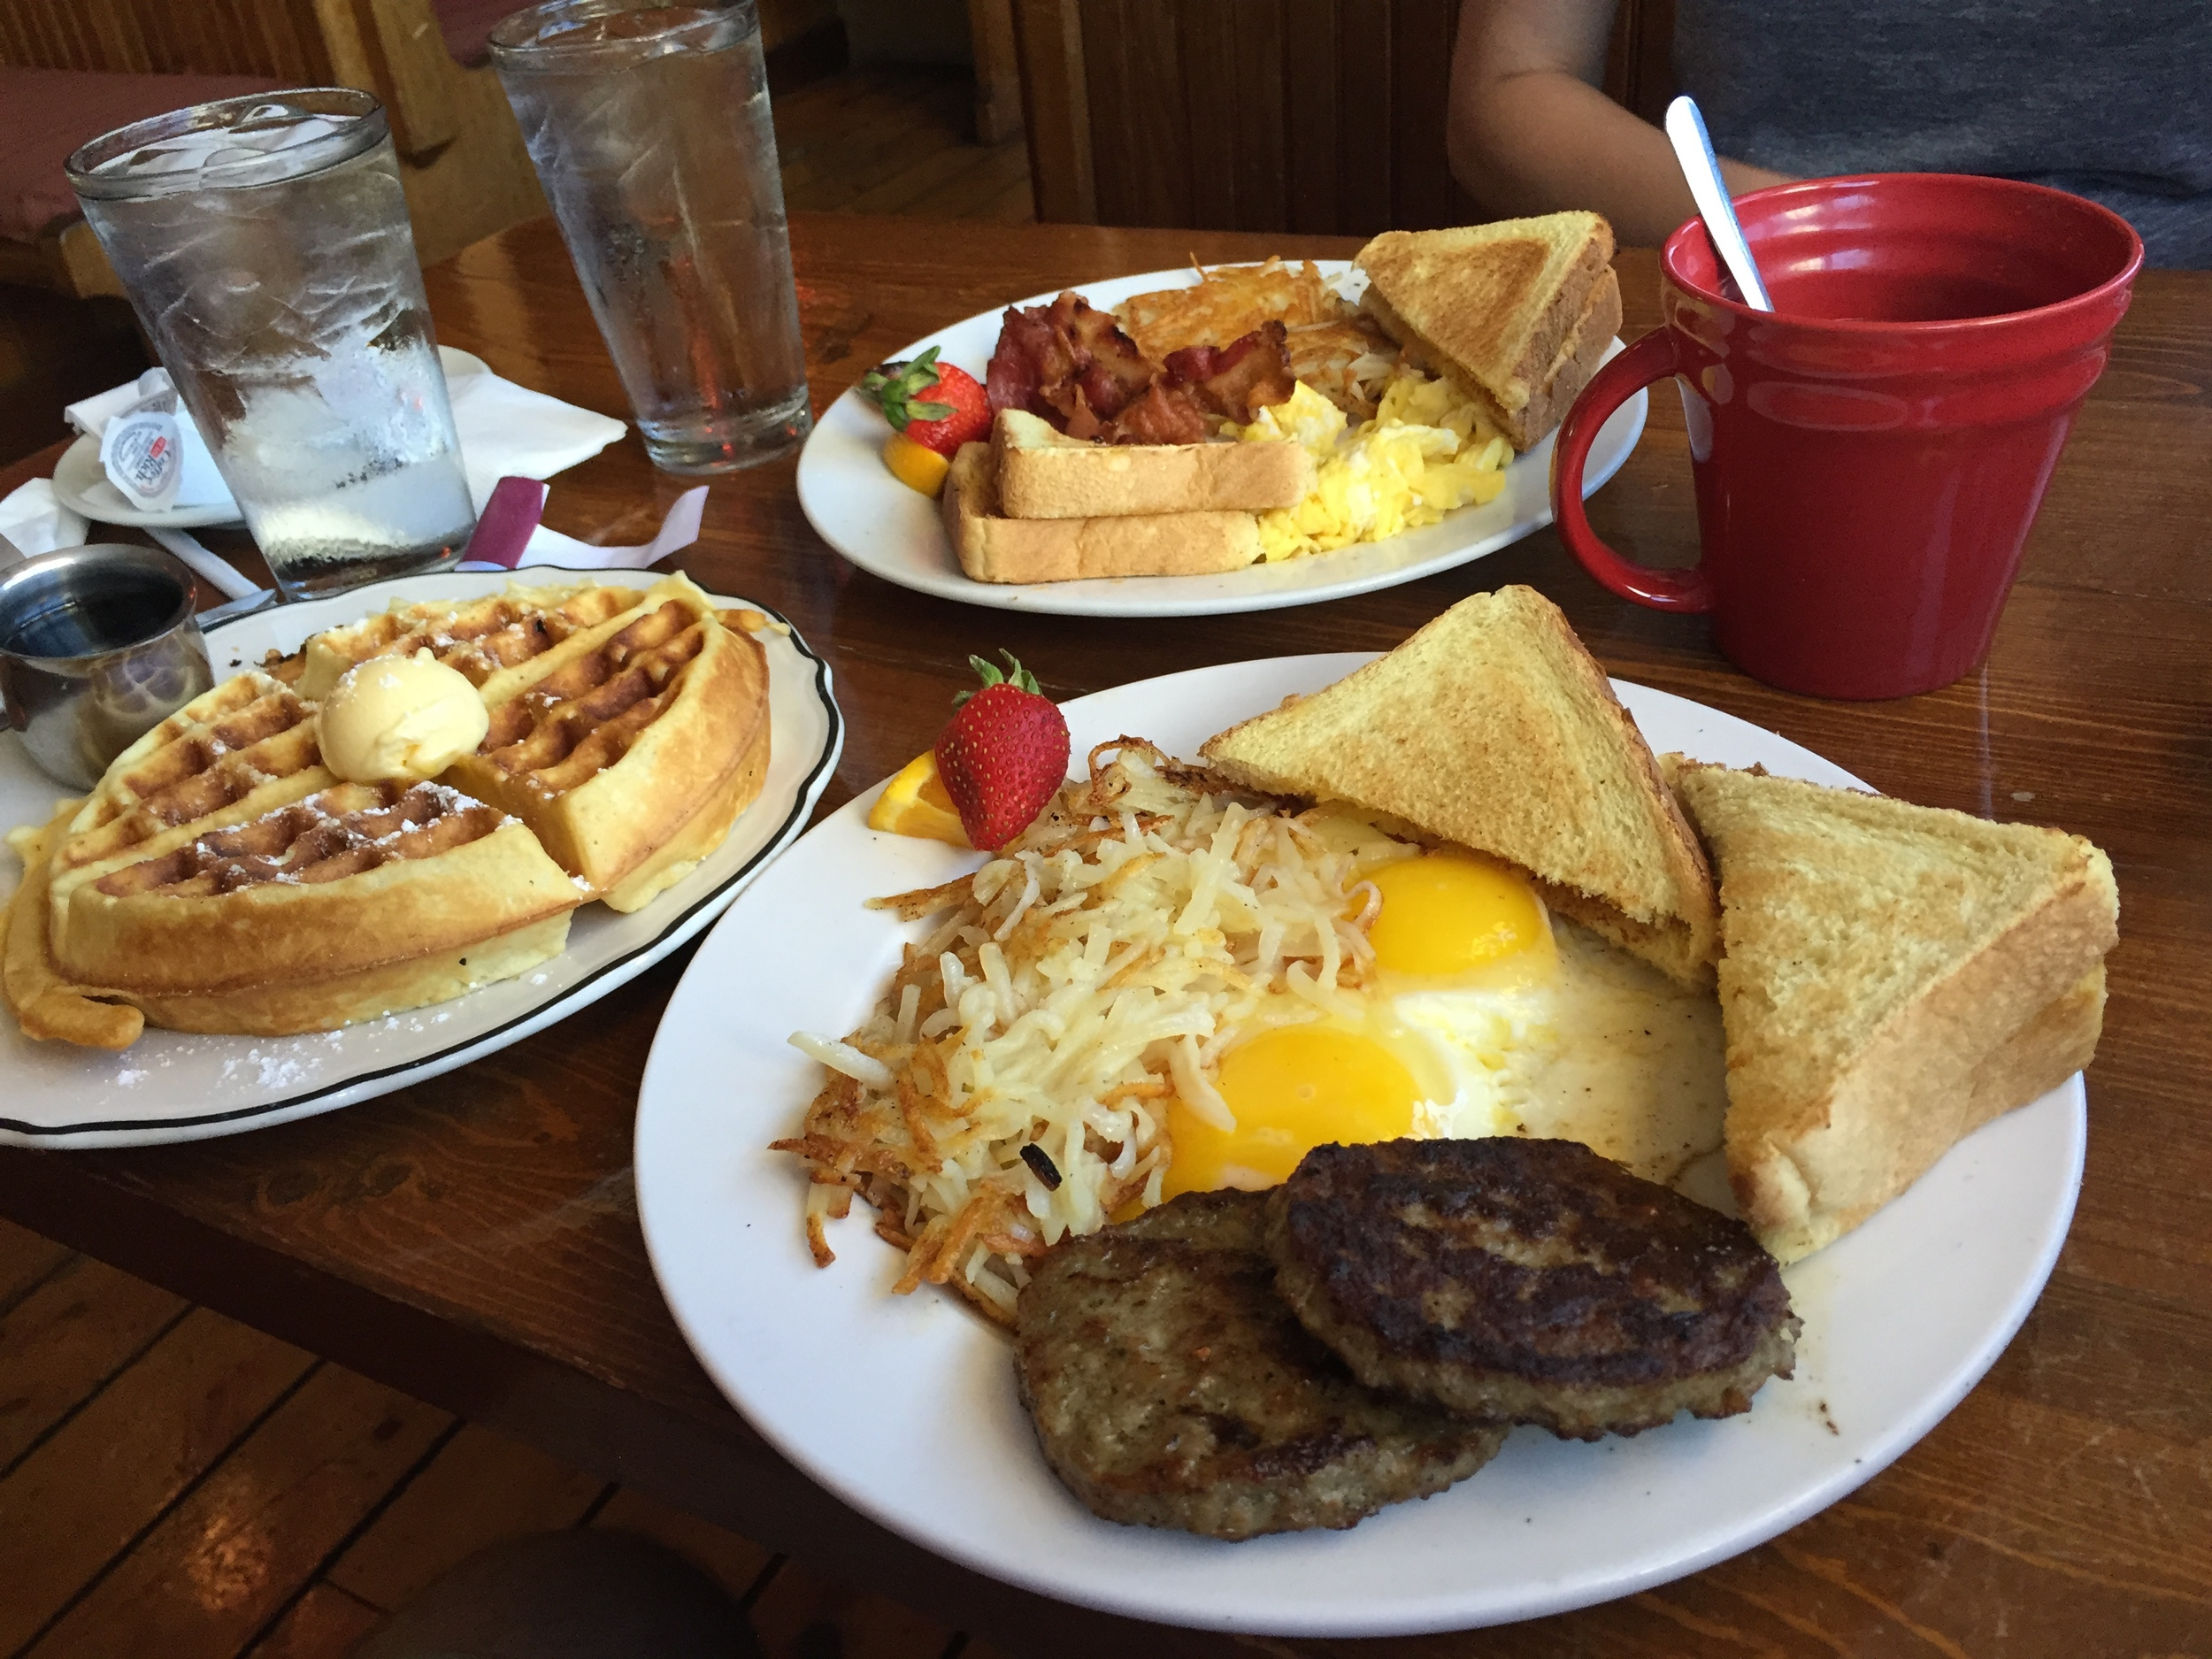 I fall asleep thinking about this breakfast. The Hungry Soul Cafe'